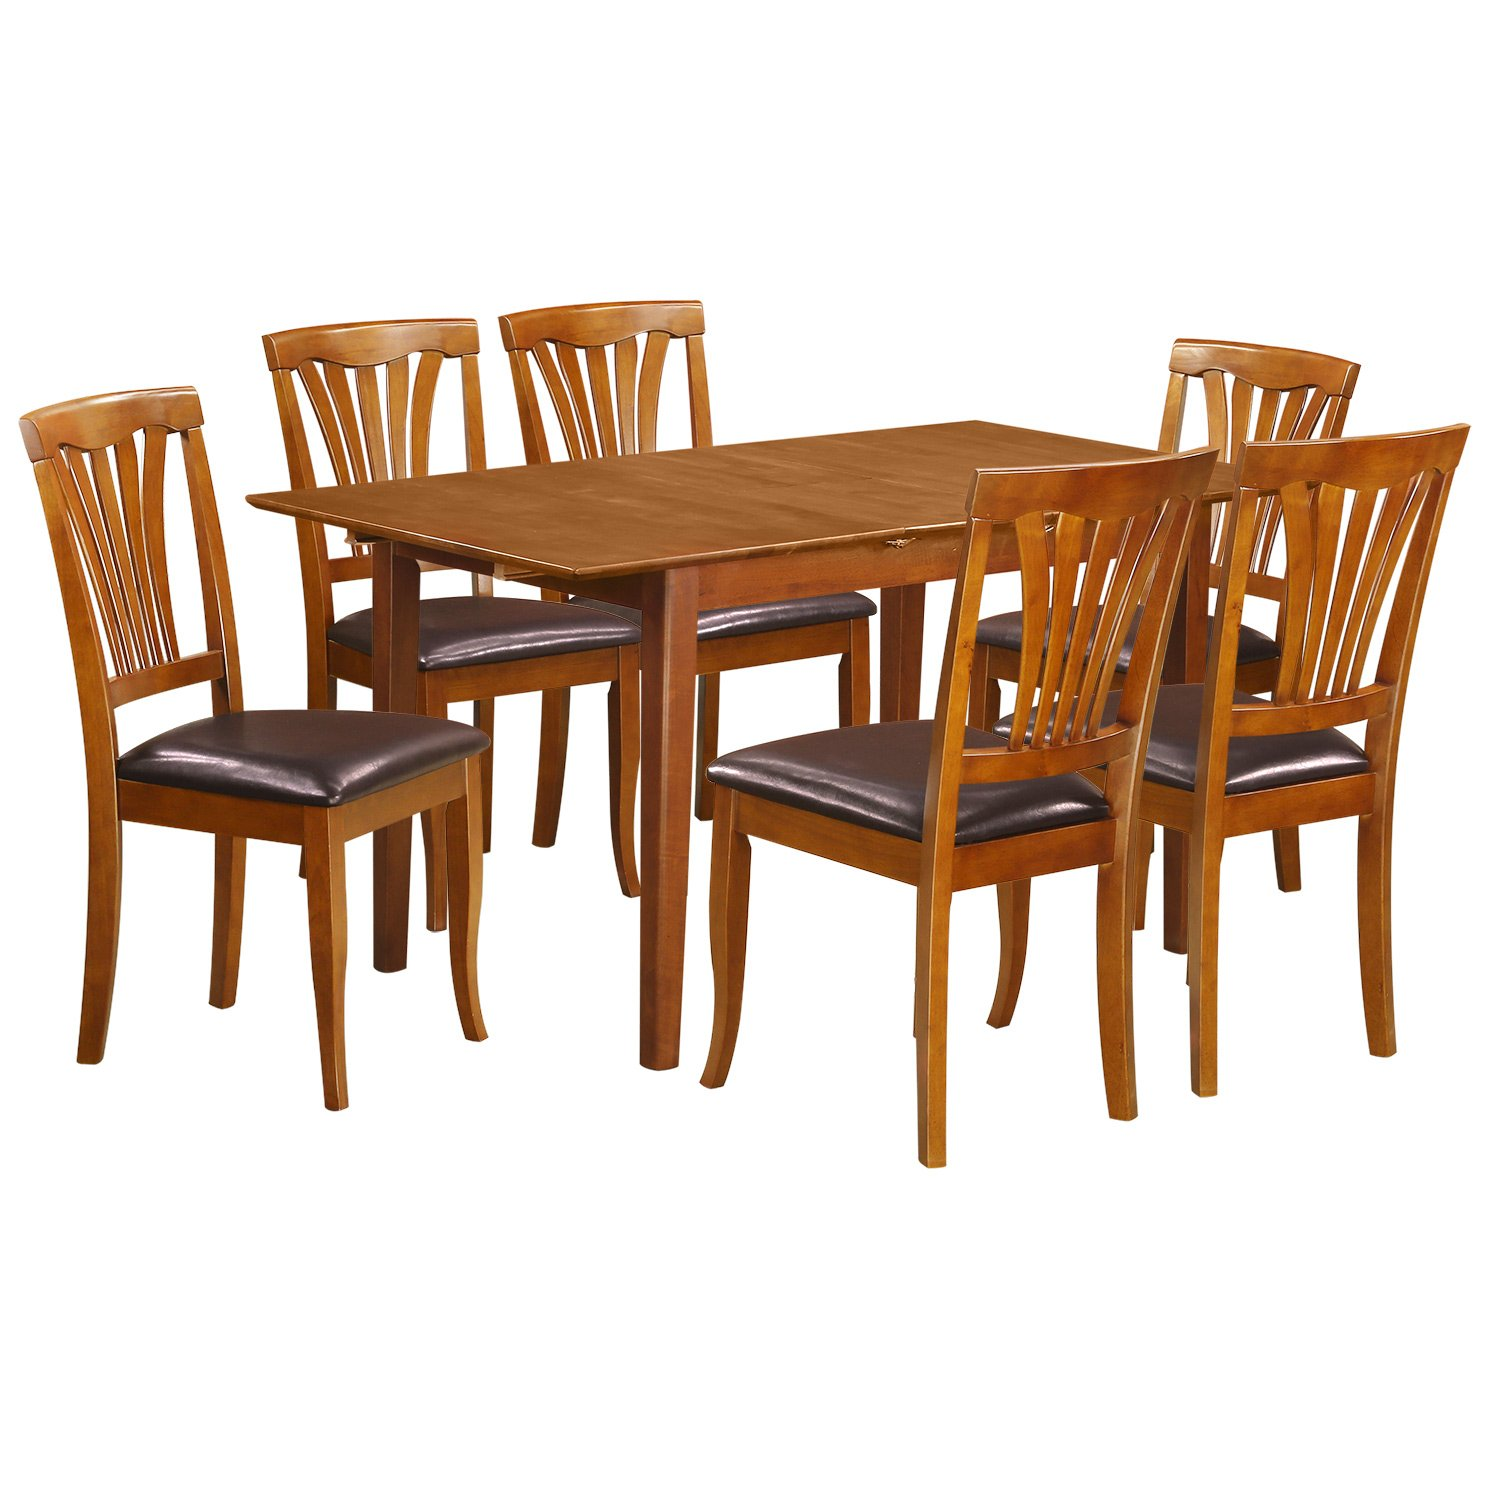 PSAV7-SBR-LC 7 PC Small dinette Table that has Leaf with 6 Dining Table Chairs